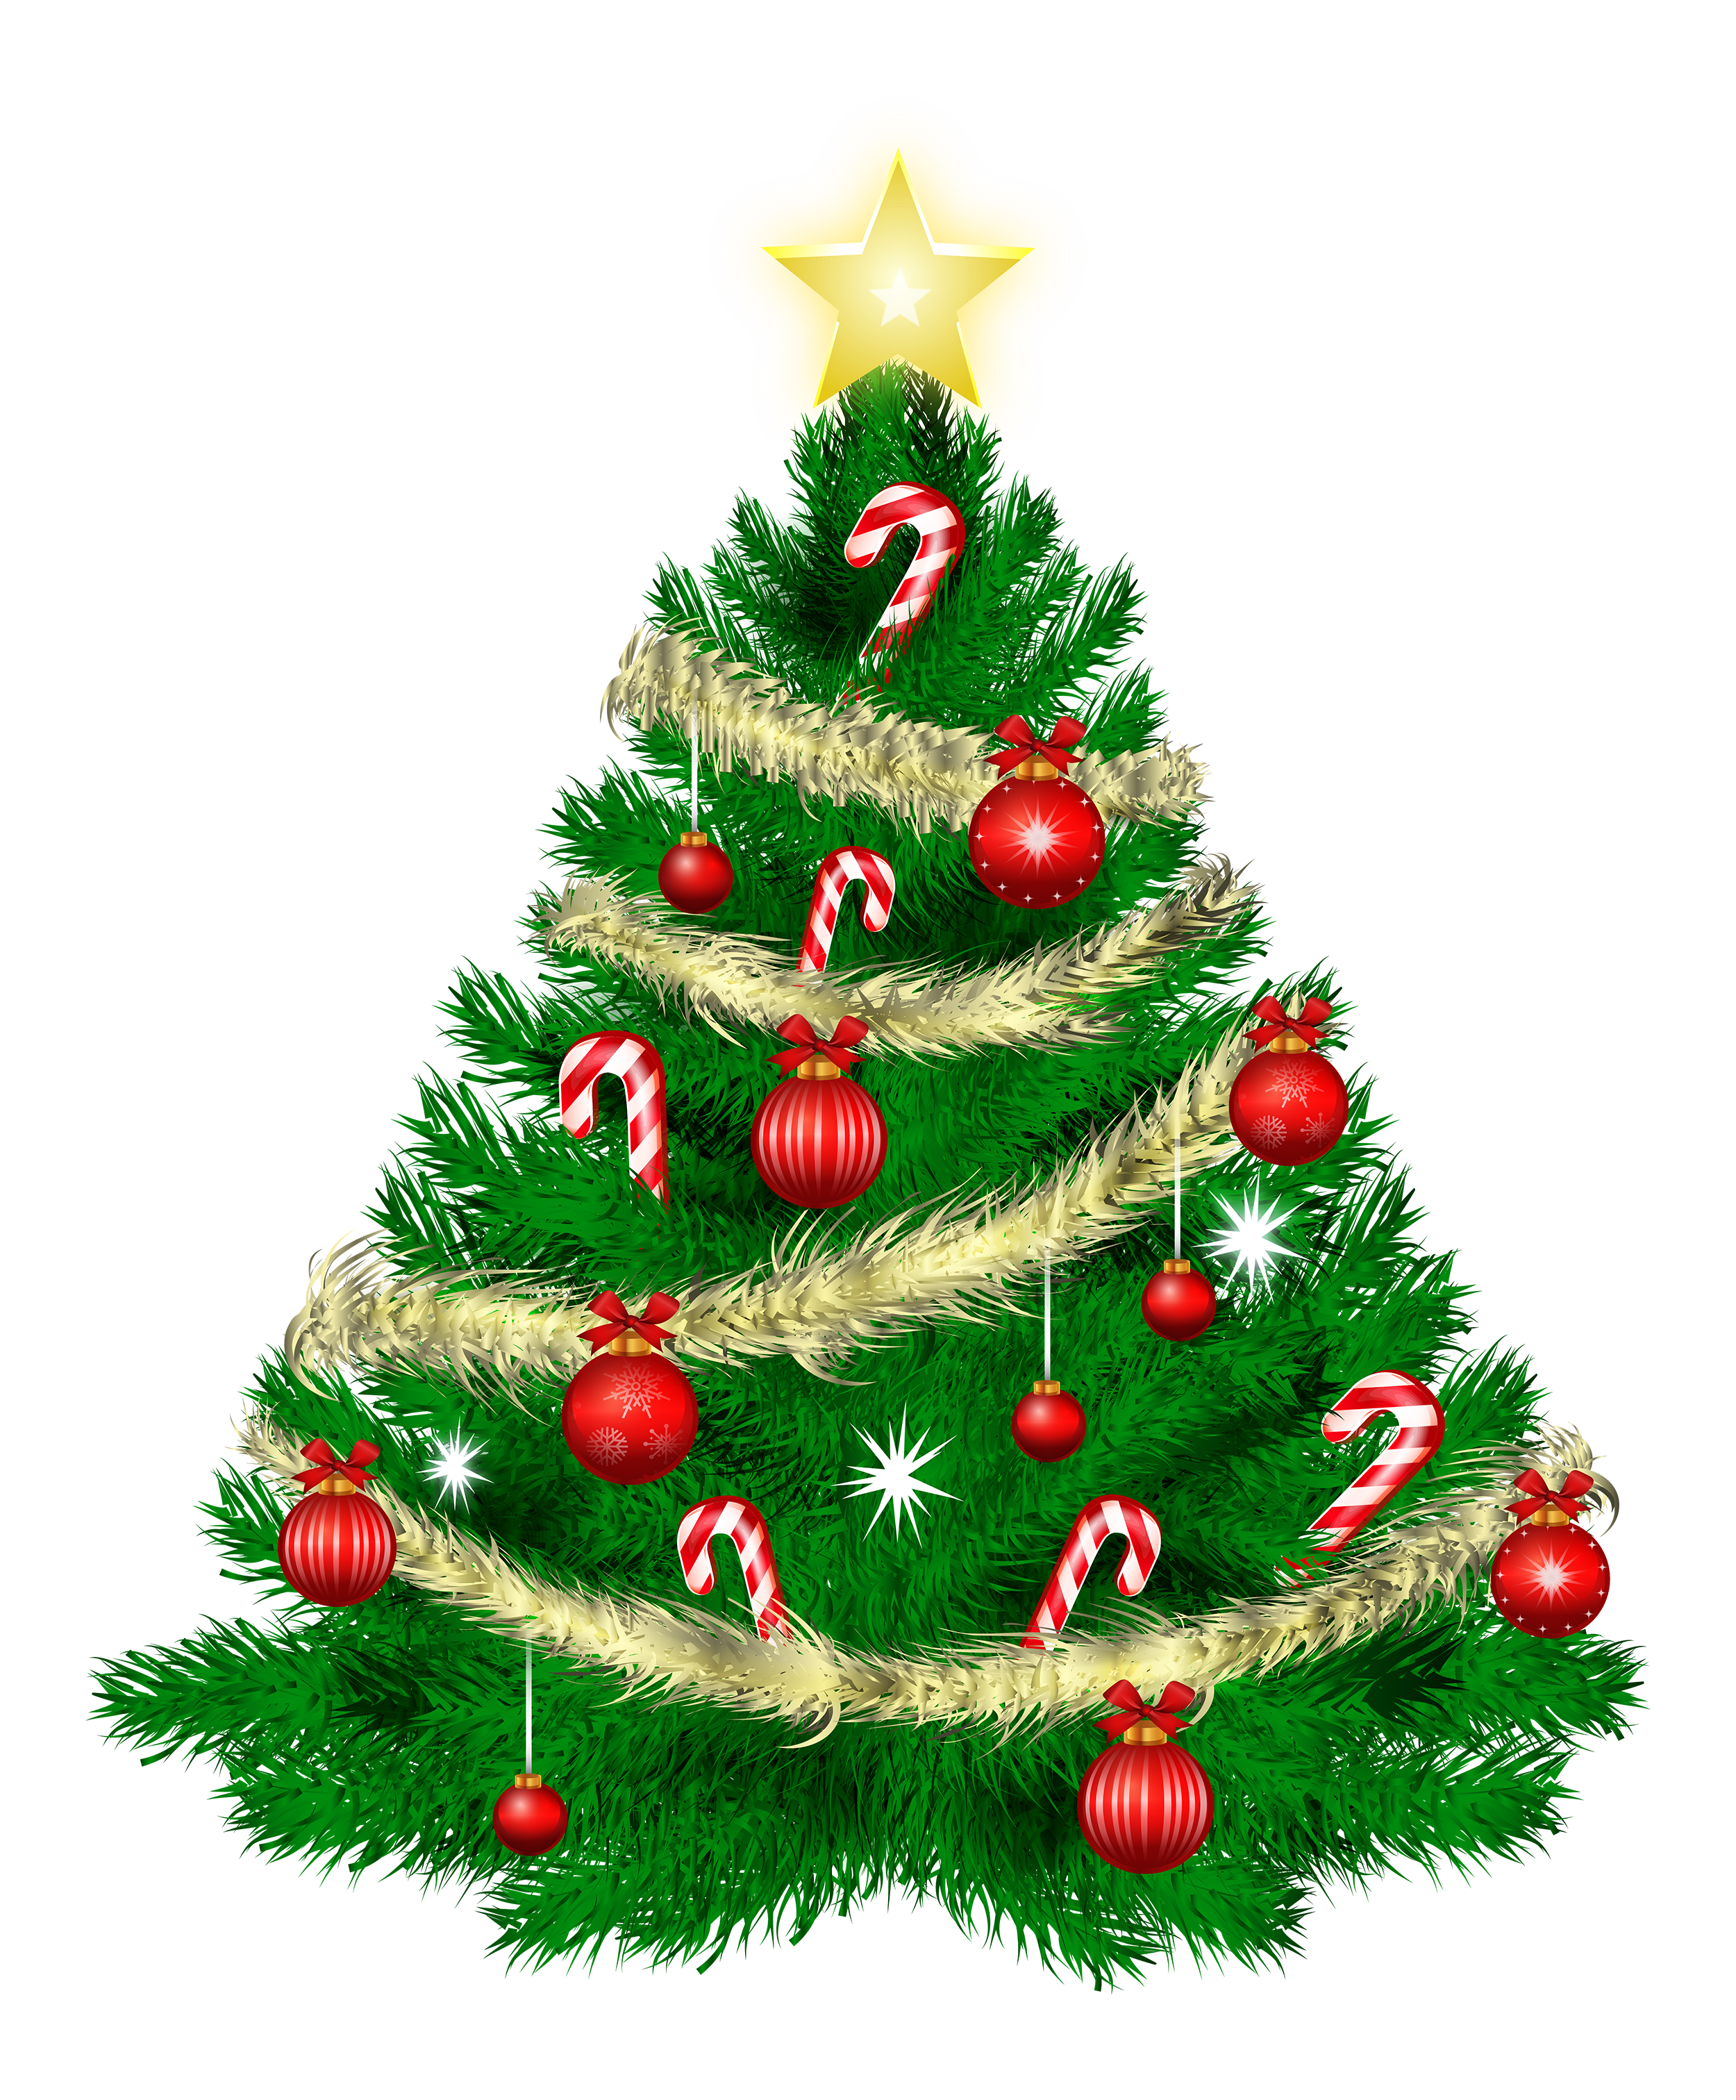 Christmas Tree clipart #2, Download drawings